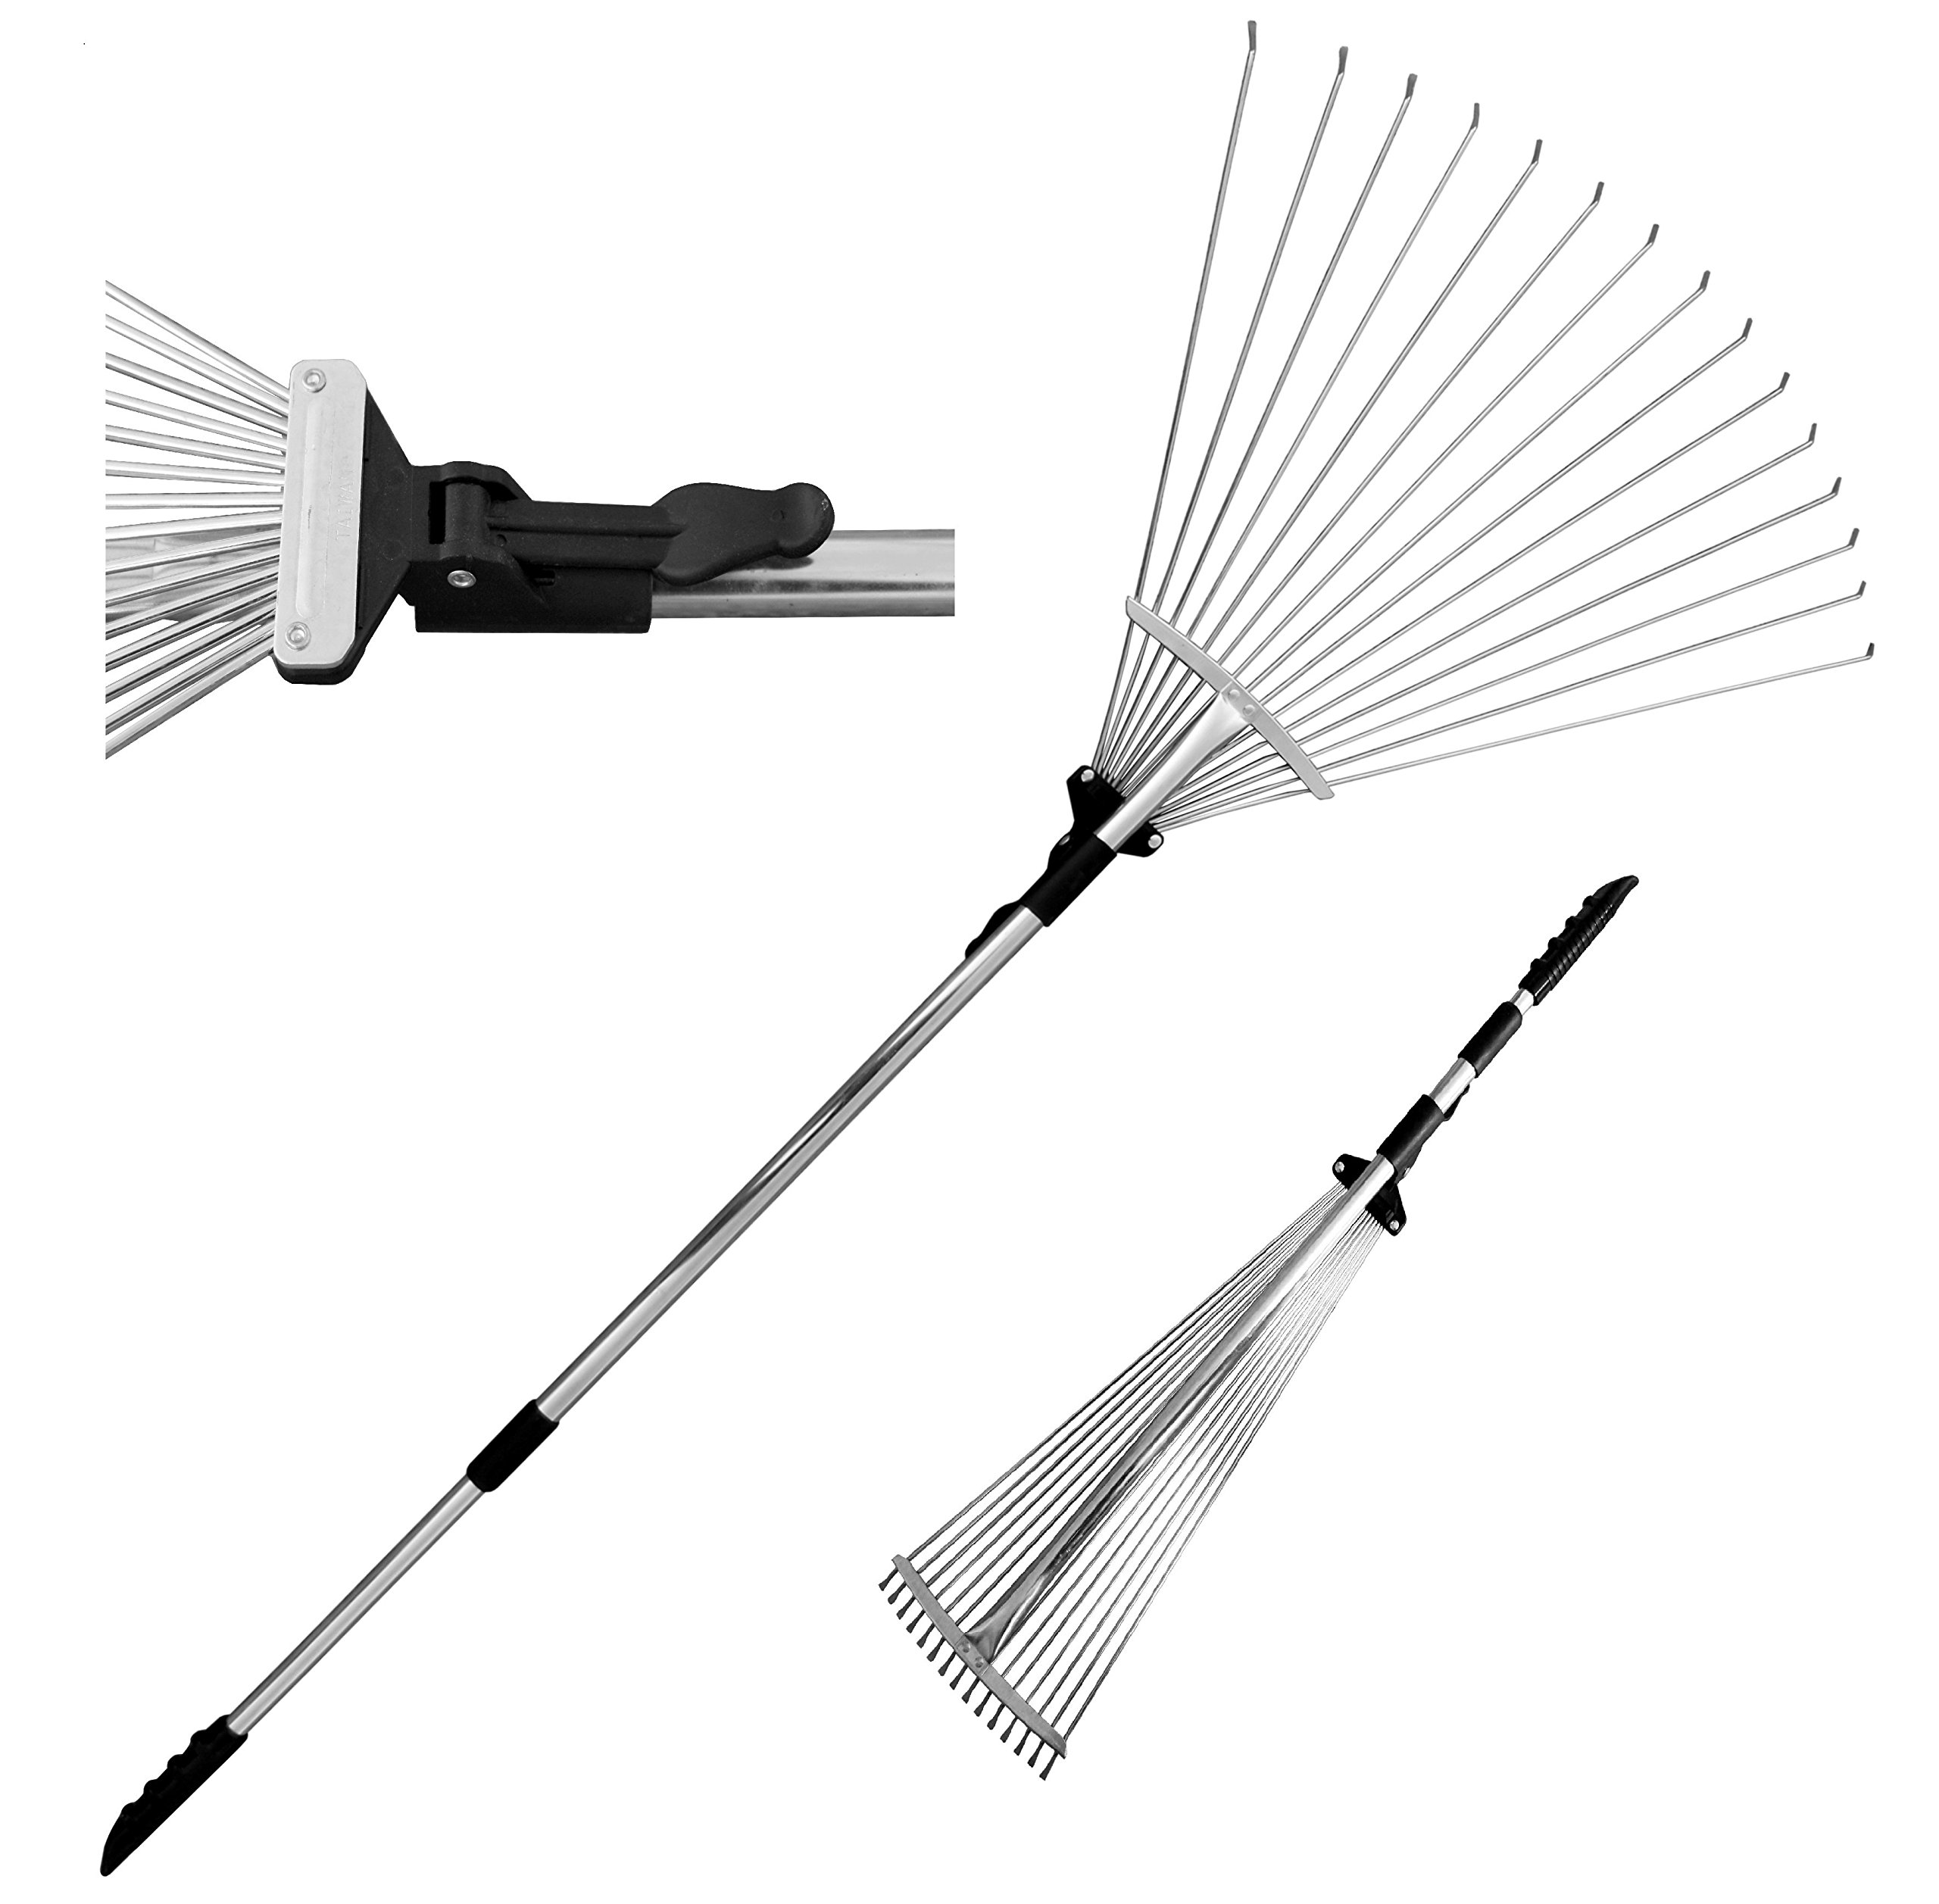 """TABOR TOOLS J16A Telescopic Metal Rake 63"""", Adjustable Folding Leaves Rake for Quick Clean Up of Lawn and Yard, Garden Leaf Rake, Expanding Handle with Adjustable 8""""- 23"""" Folding Head"""